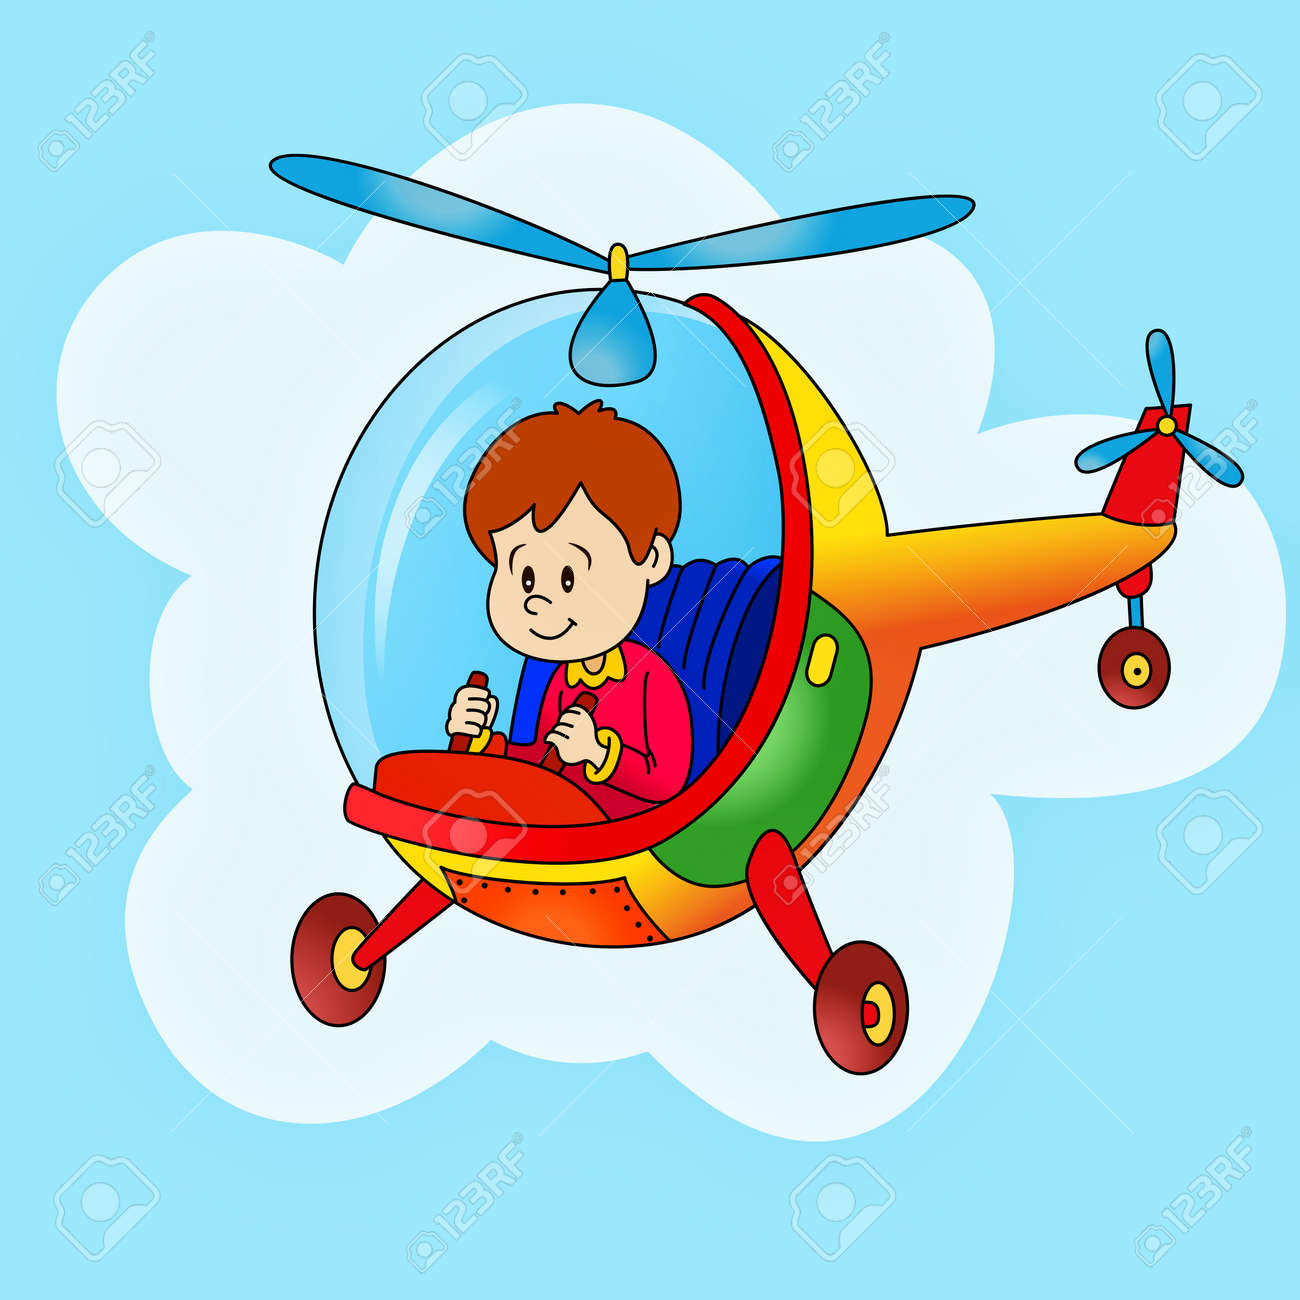 Happy Boy Flying With Helicopter Royalty Free Cliparts Vectors And Stock Illustration Image 37152091